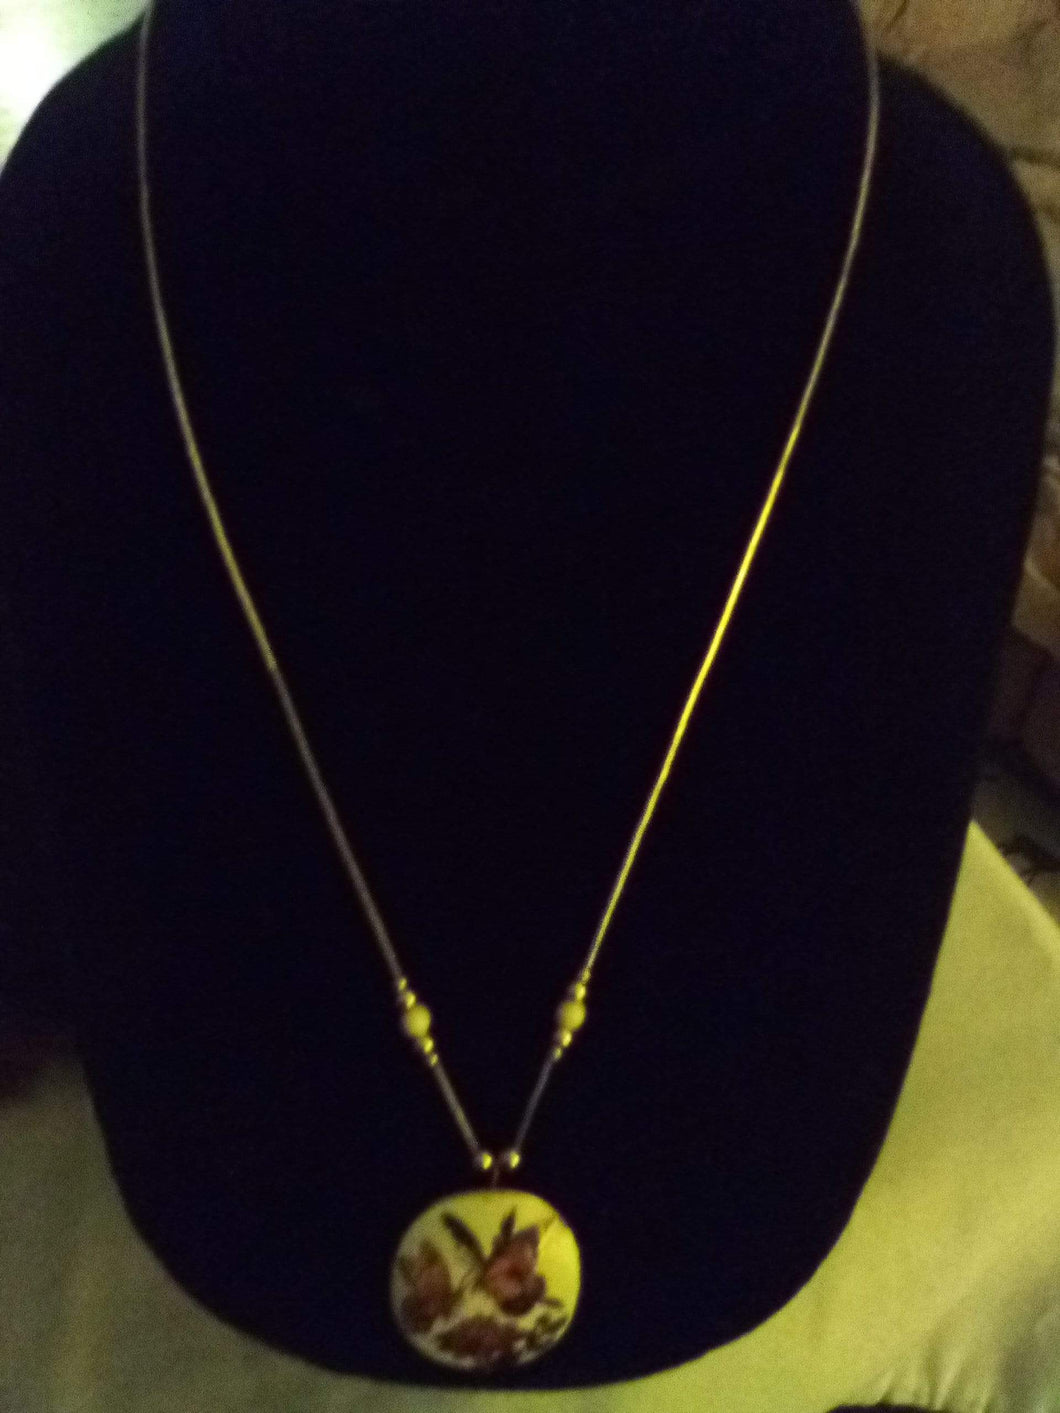 Pretty necklace with chain and cloisone pendent - B&P'sringsnthings